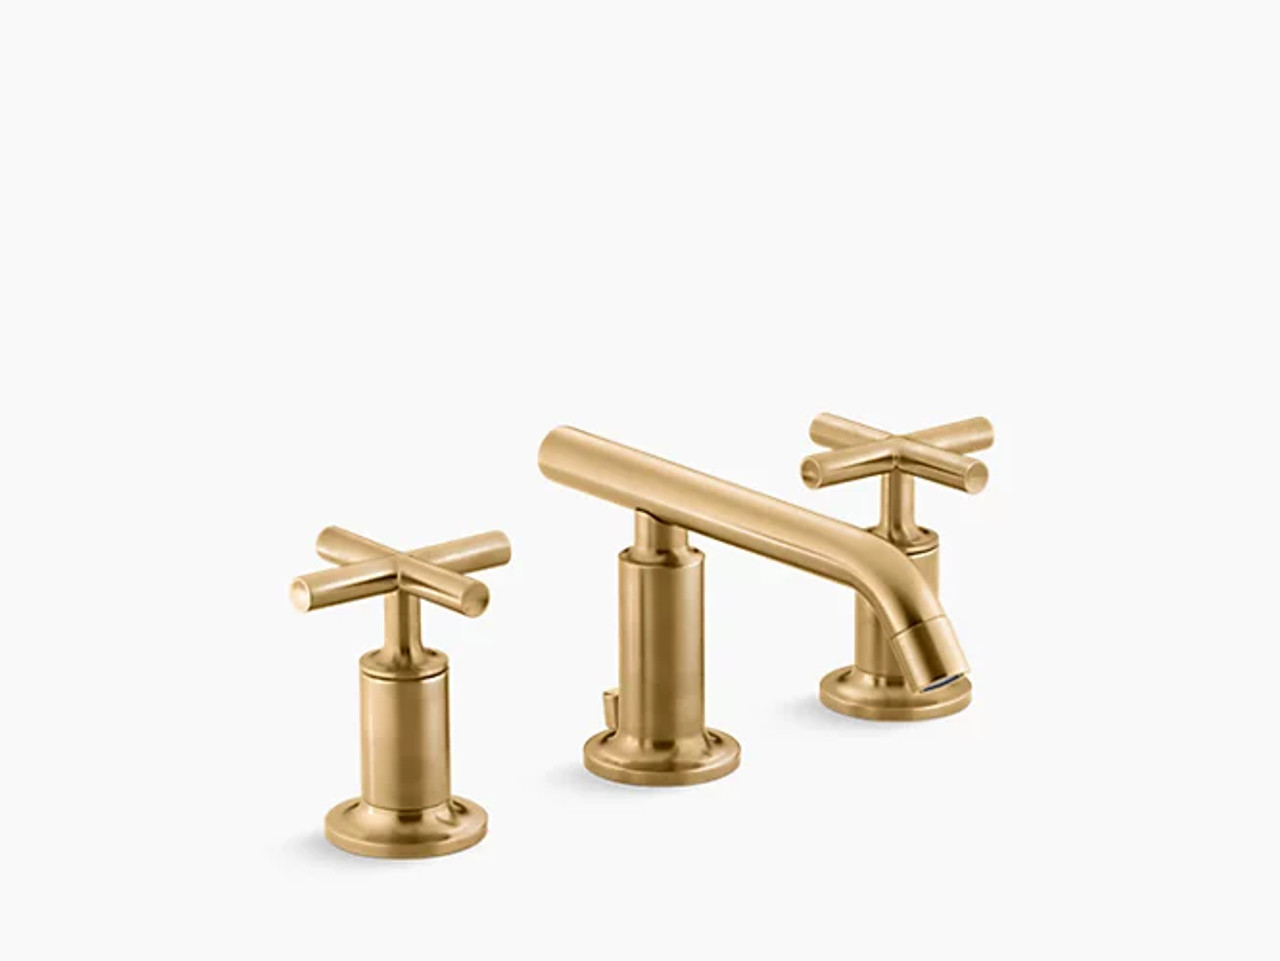 kohler purist widespread bathroom sink faucet with low cross handles and low spout in vibrant brushed moderne brass